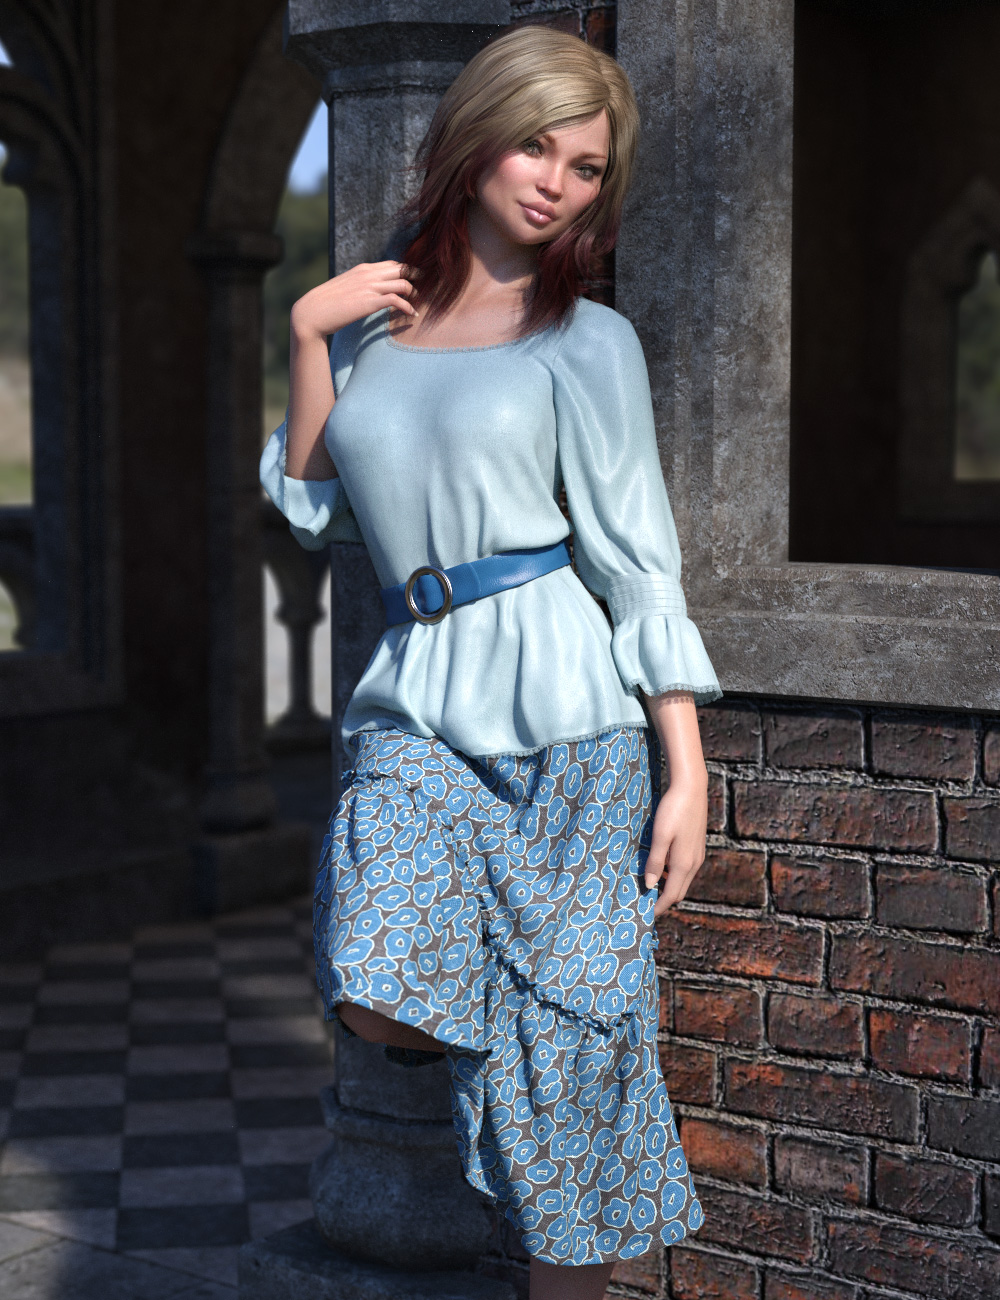 dForce Collection 03 - Boho Outfit for Genesis 8 Female(s) by: esha, 3D Models by Daz 3D